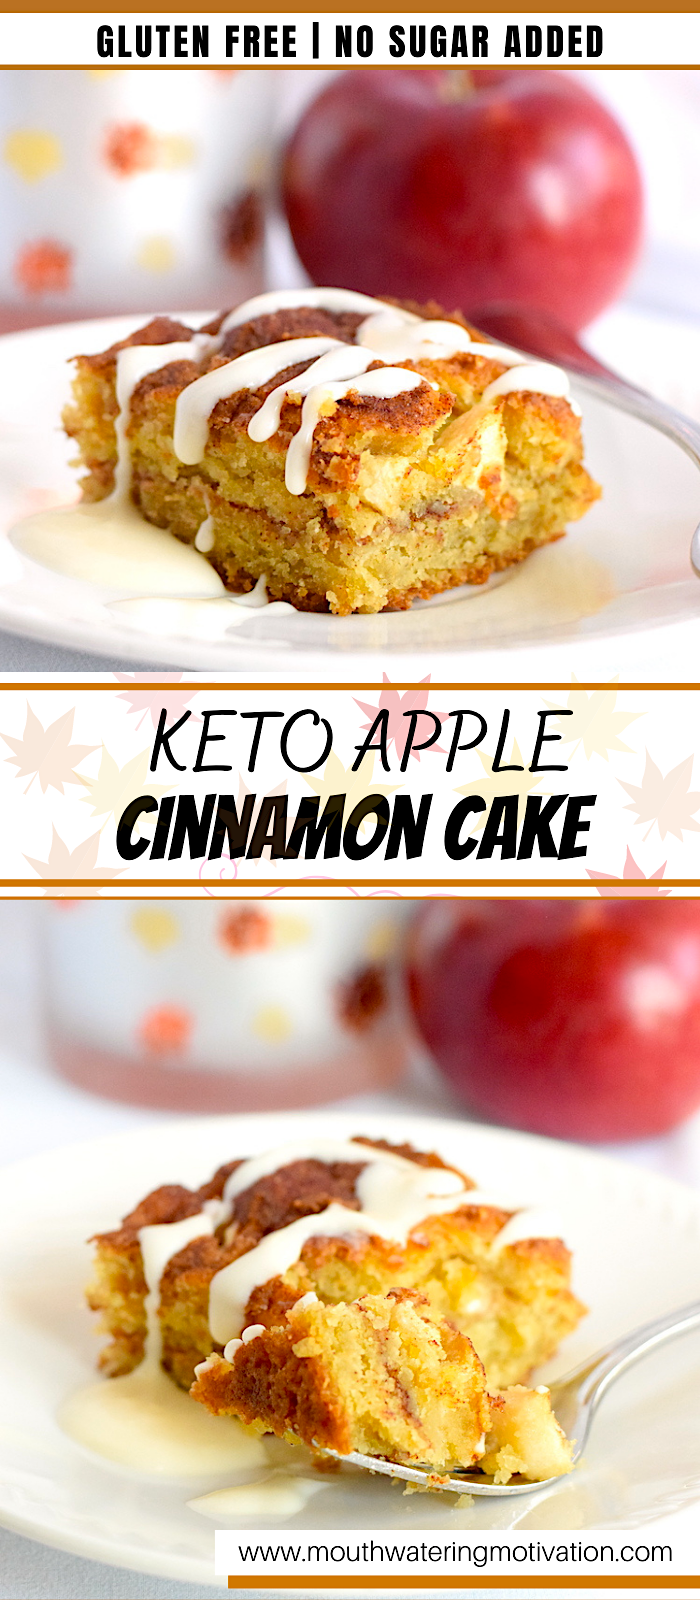 keto apple cinnamon cake recipe